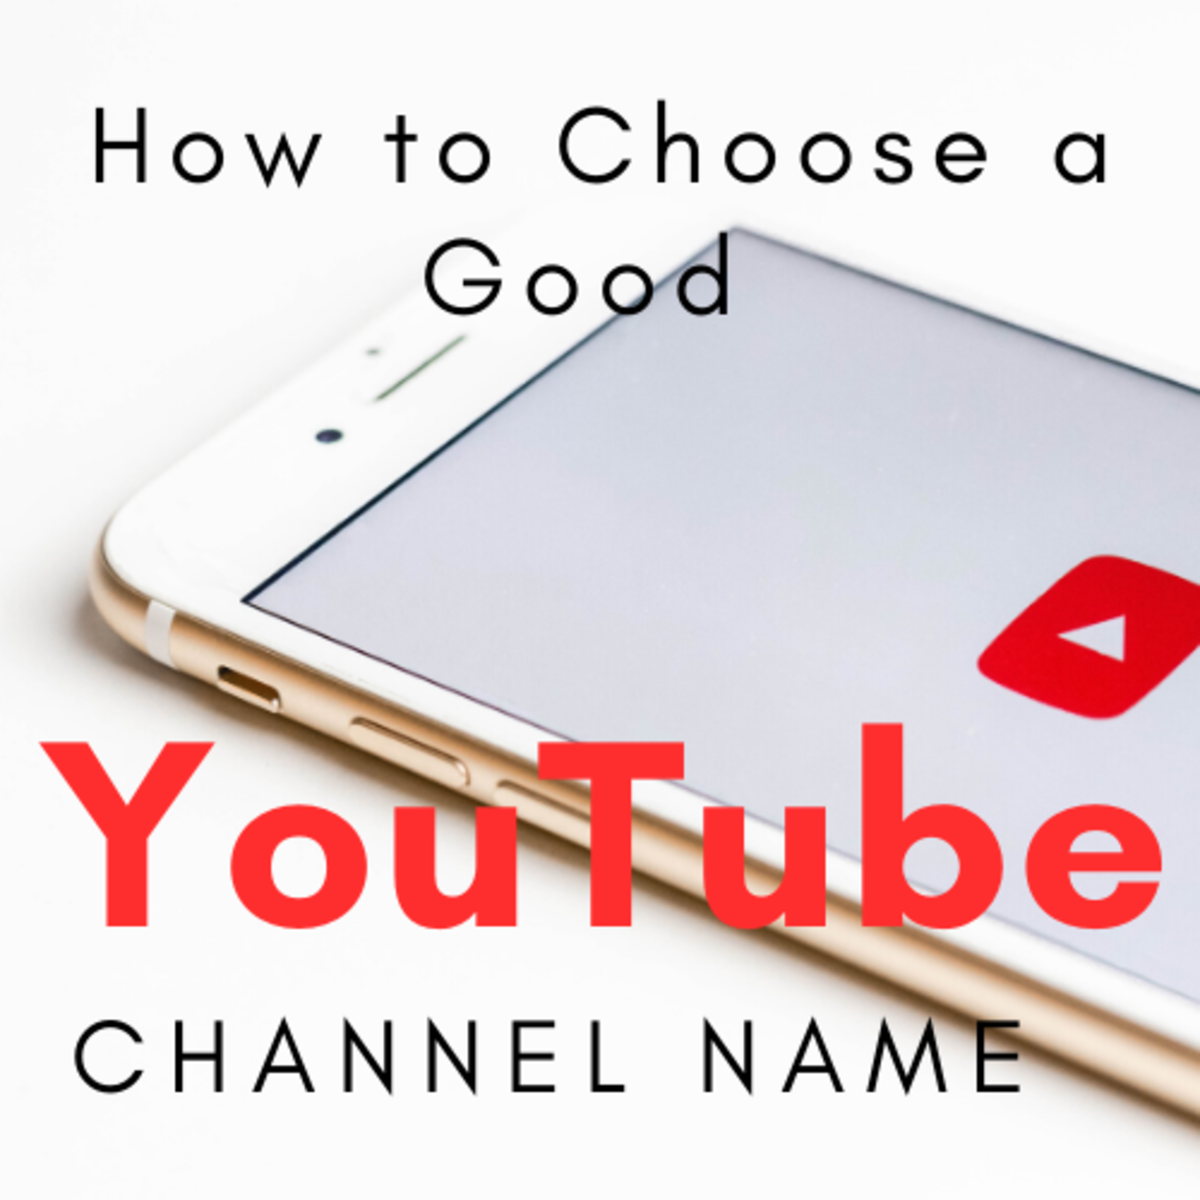 200+ Creative YouTube Channel Names for Brands and Business